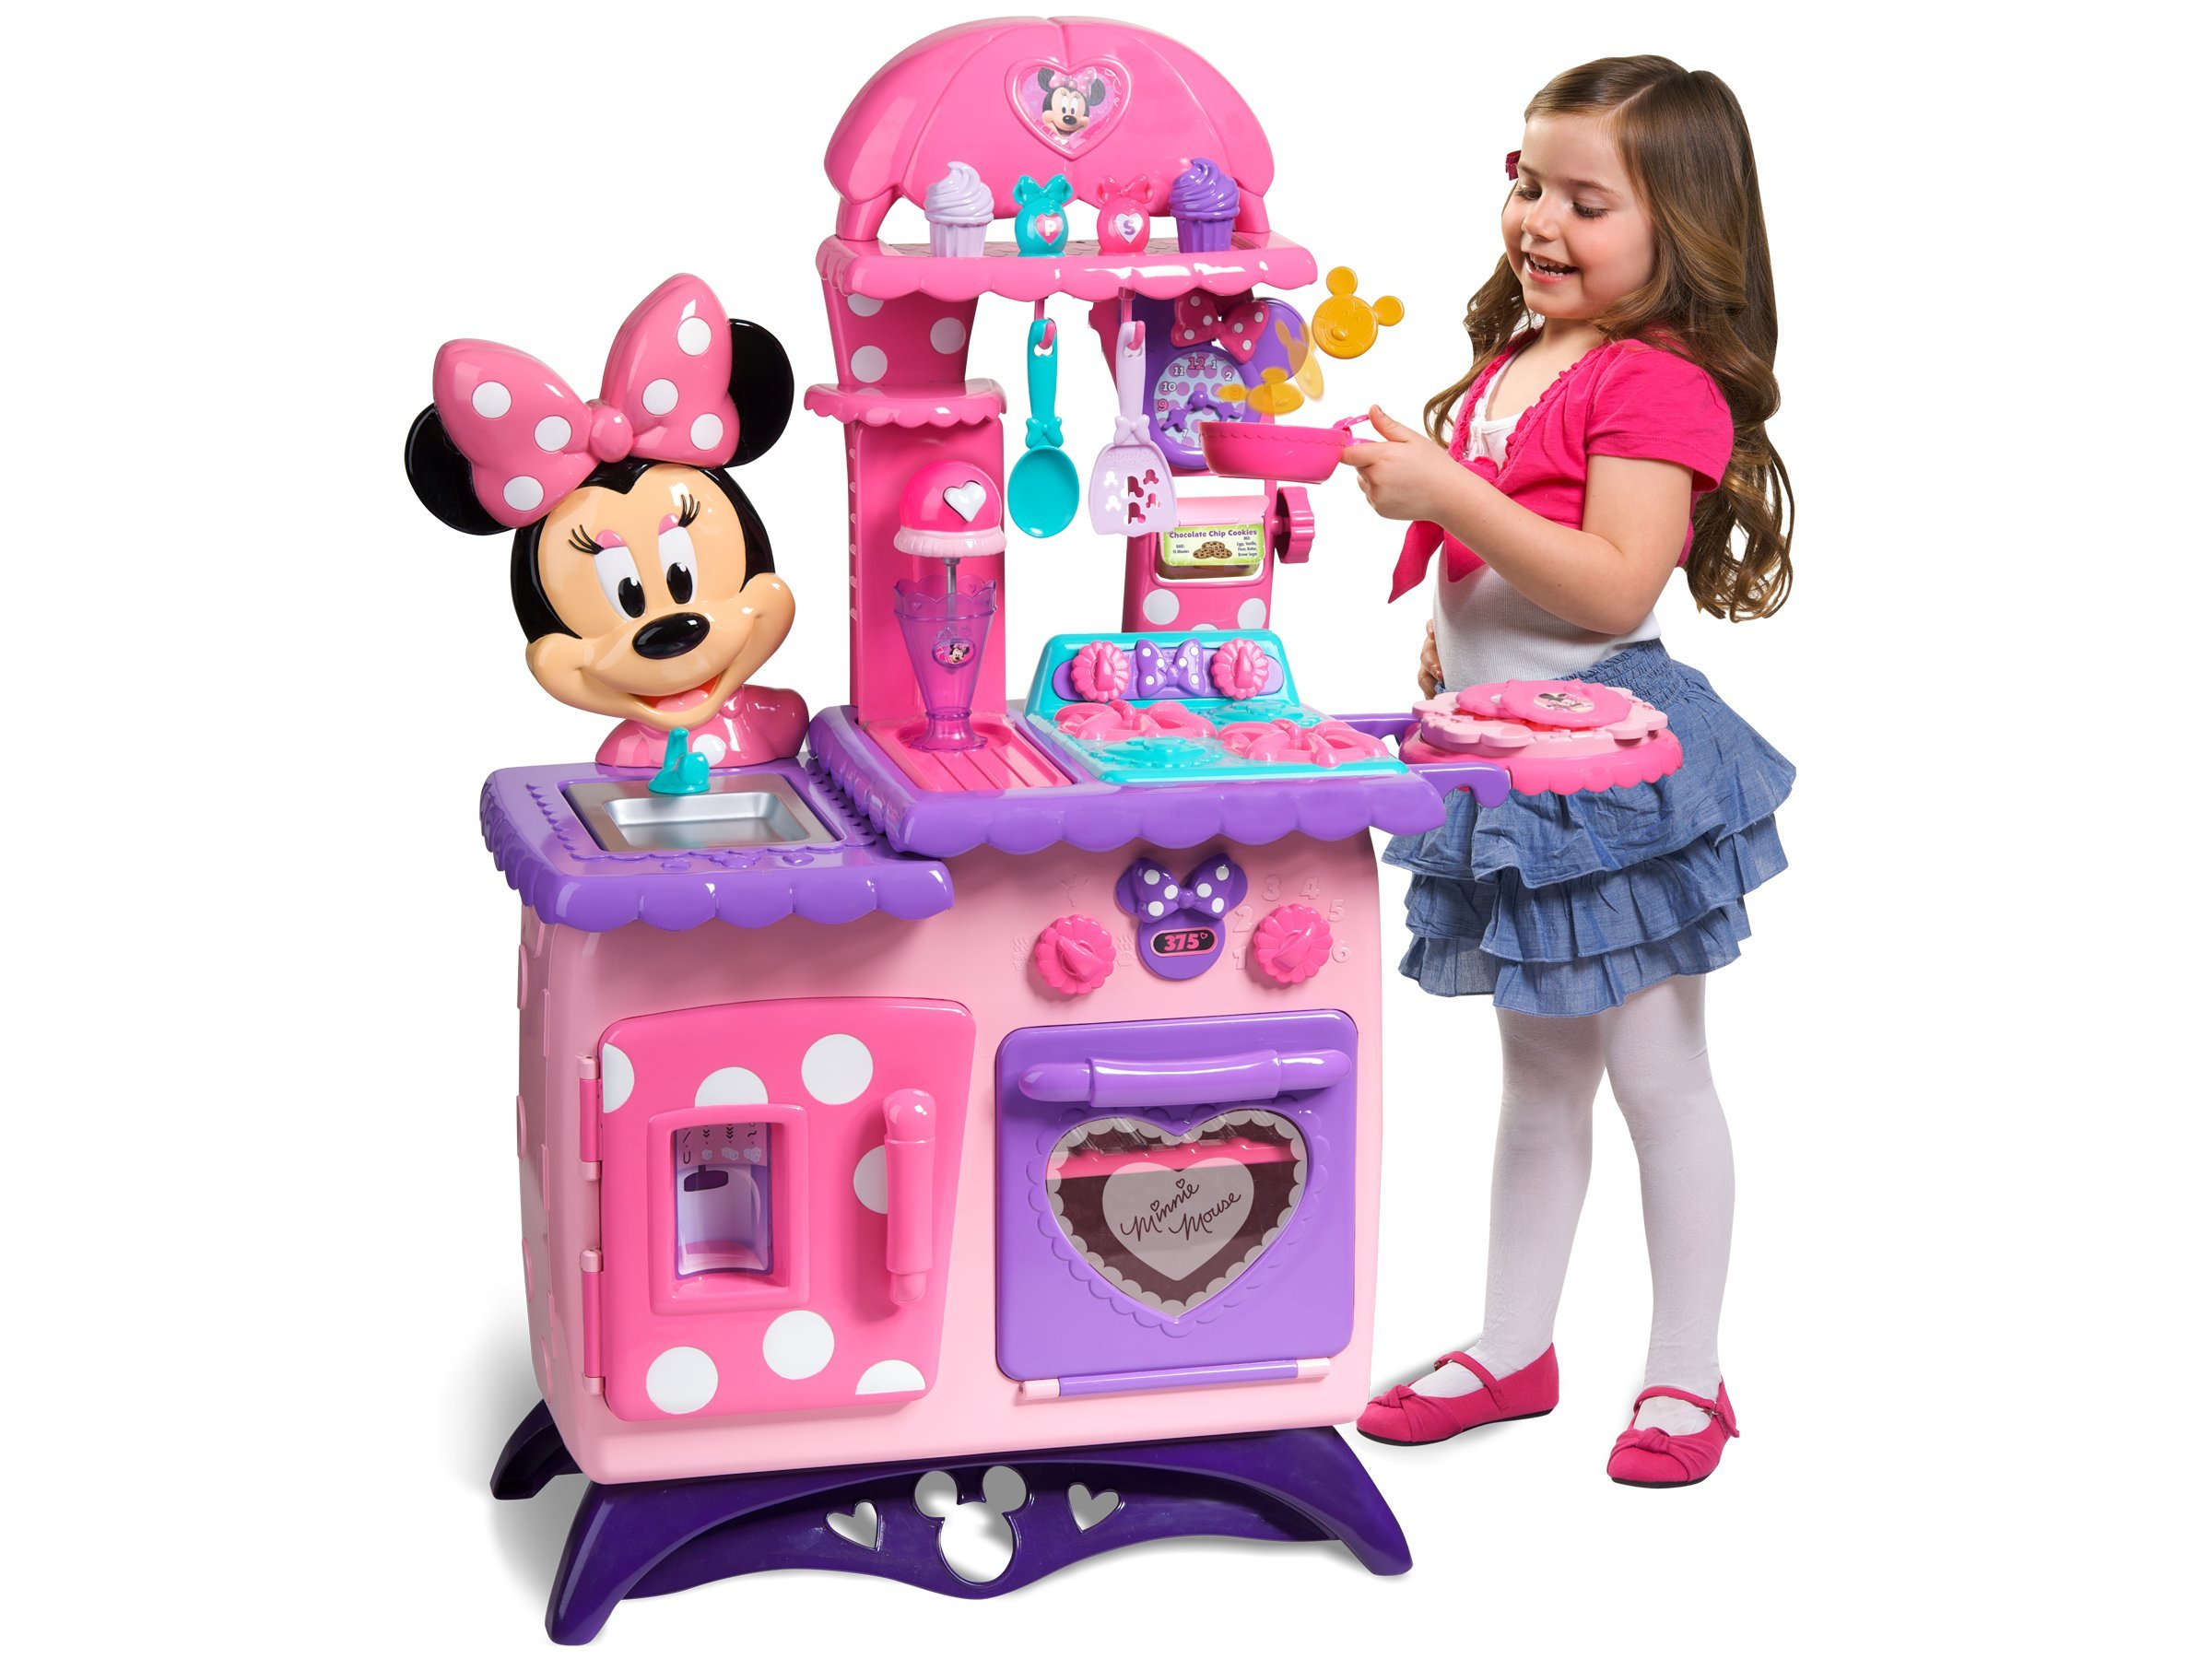 Minnie Mouse Flippin Fun Kitchen by Just Play